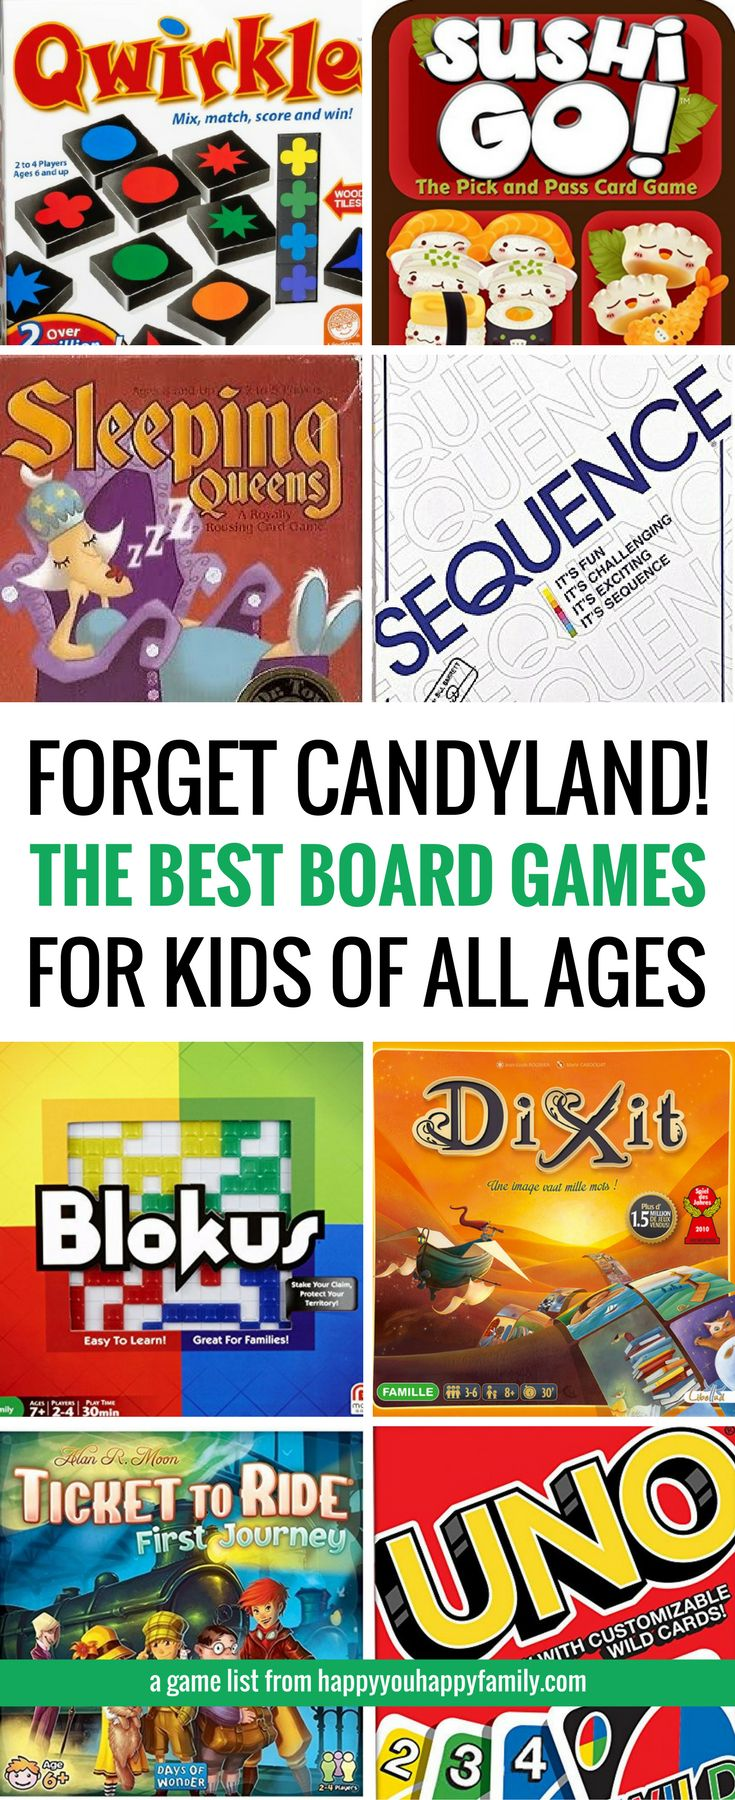 This is the BEST list of board games for kids that work for a wide range of ages, from preschoolers to teens and beyond. These card games and board games are so much fun that adults love them, too! Because life is too short for suffering through Candyland. These games also make great birthday gifts and Christmas gifts for the whole family. #gamesforkids #giftsforkids #boardgames #familyfun #cardgames via @kellyjholmes